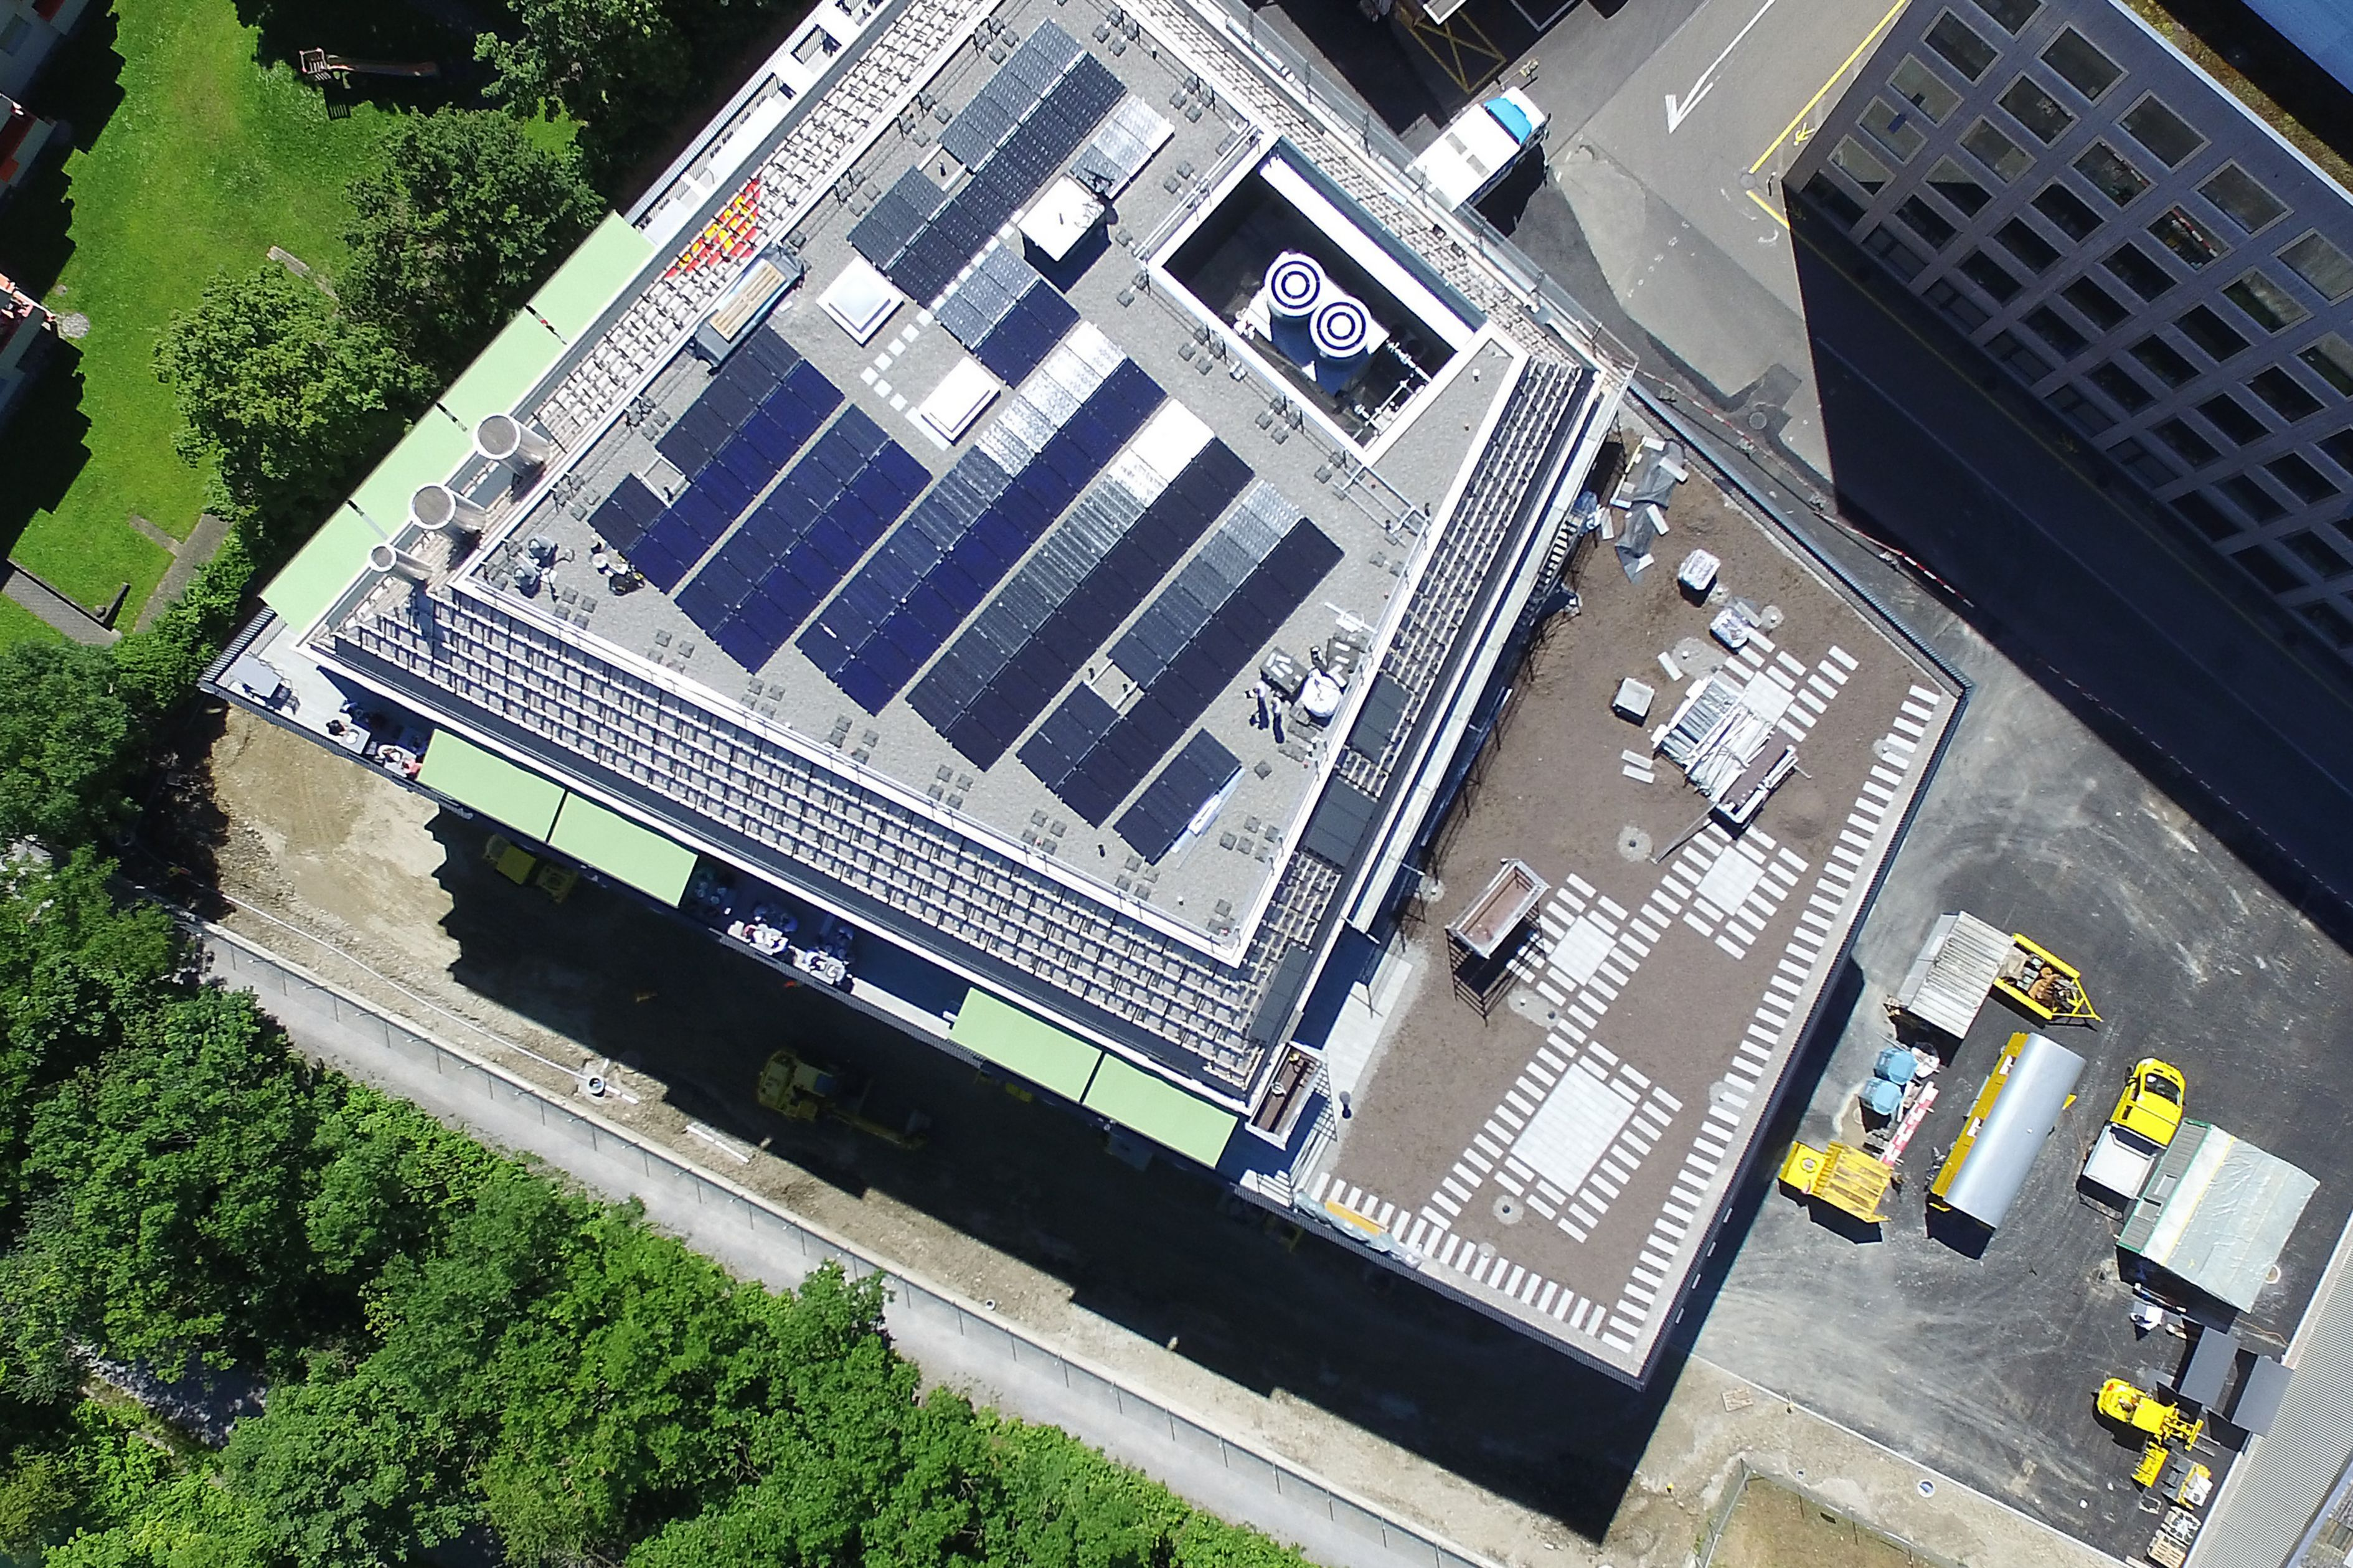 Solar PV panels mounted to roof at Limmat building in Zurich drone view